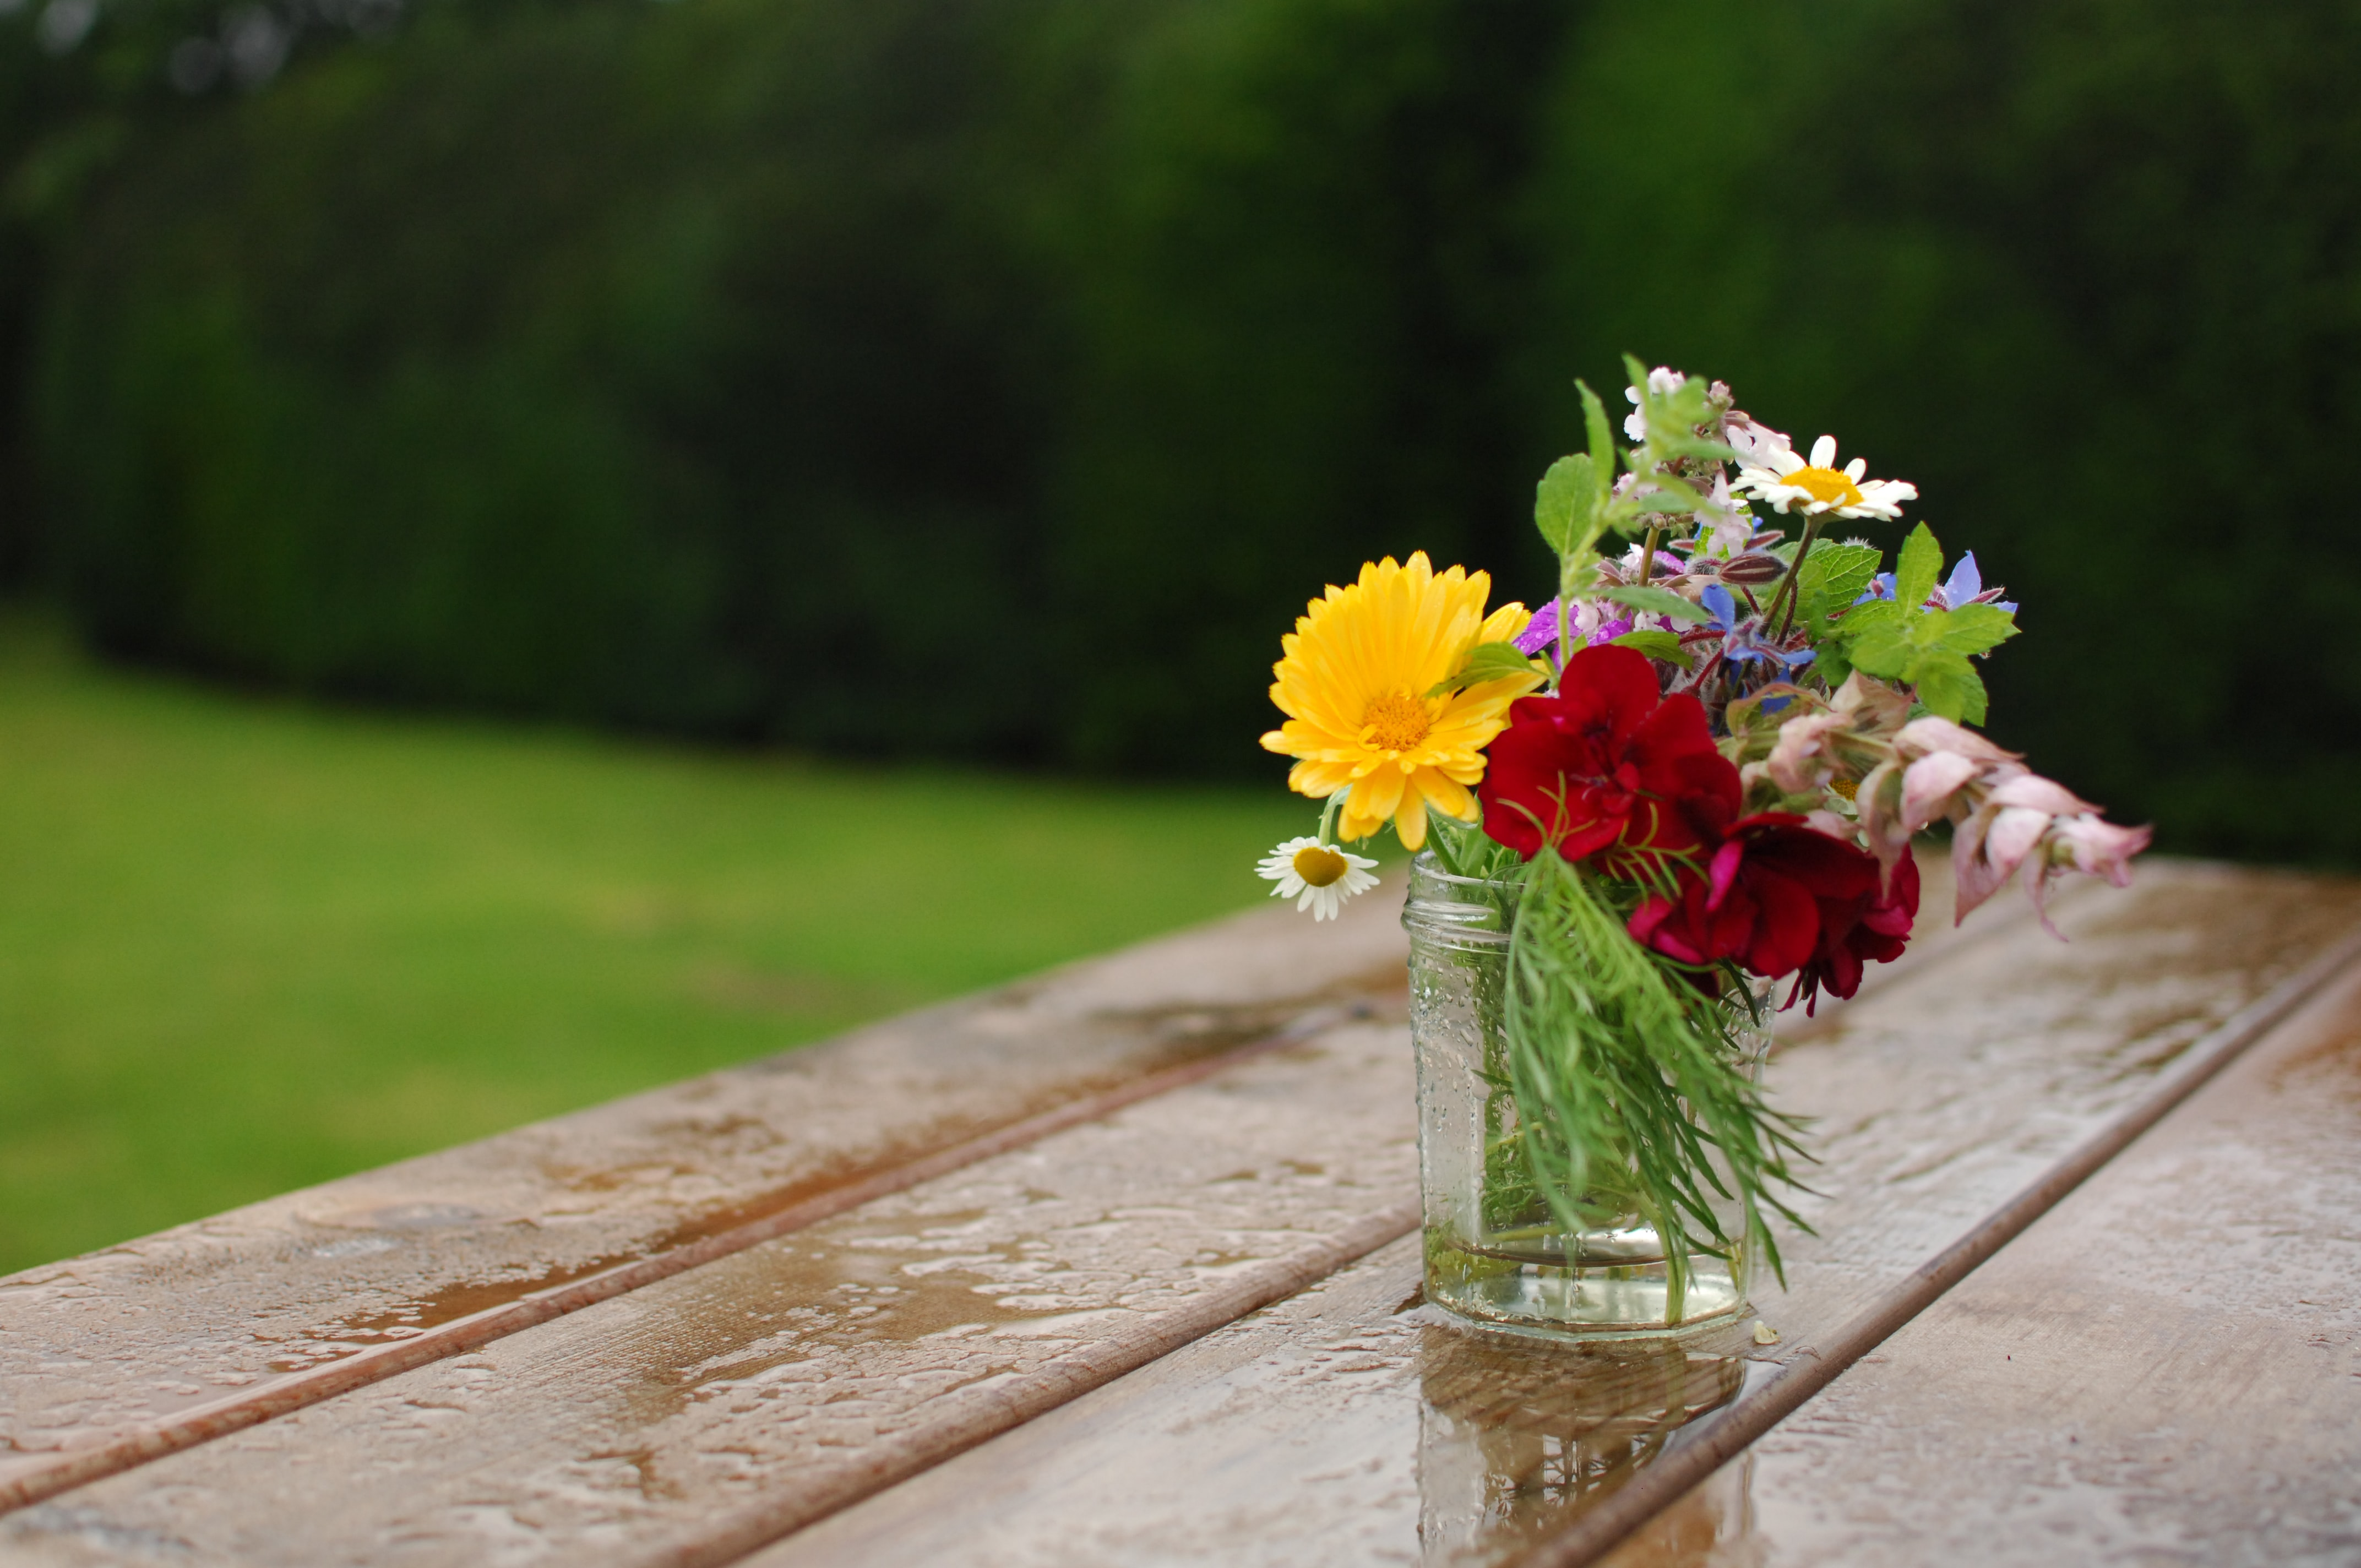 A small vase with various types of colorful flowers on a wet wooden surface outdoors